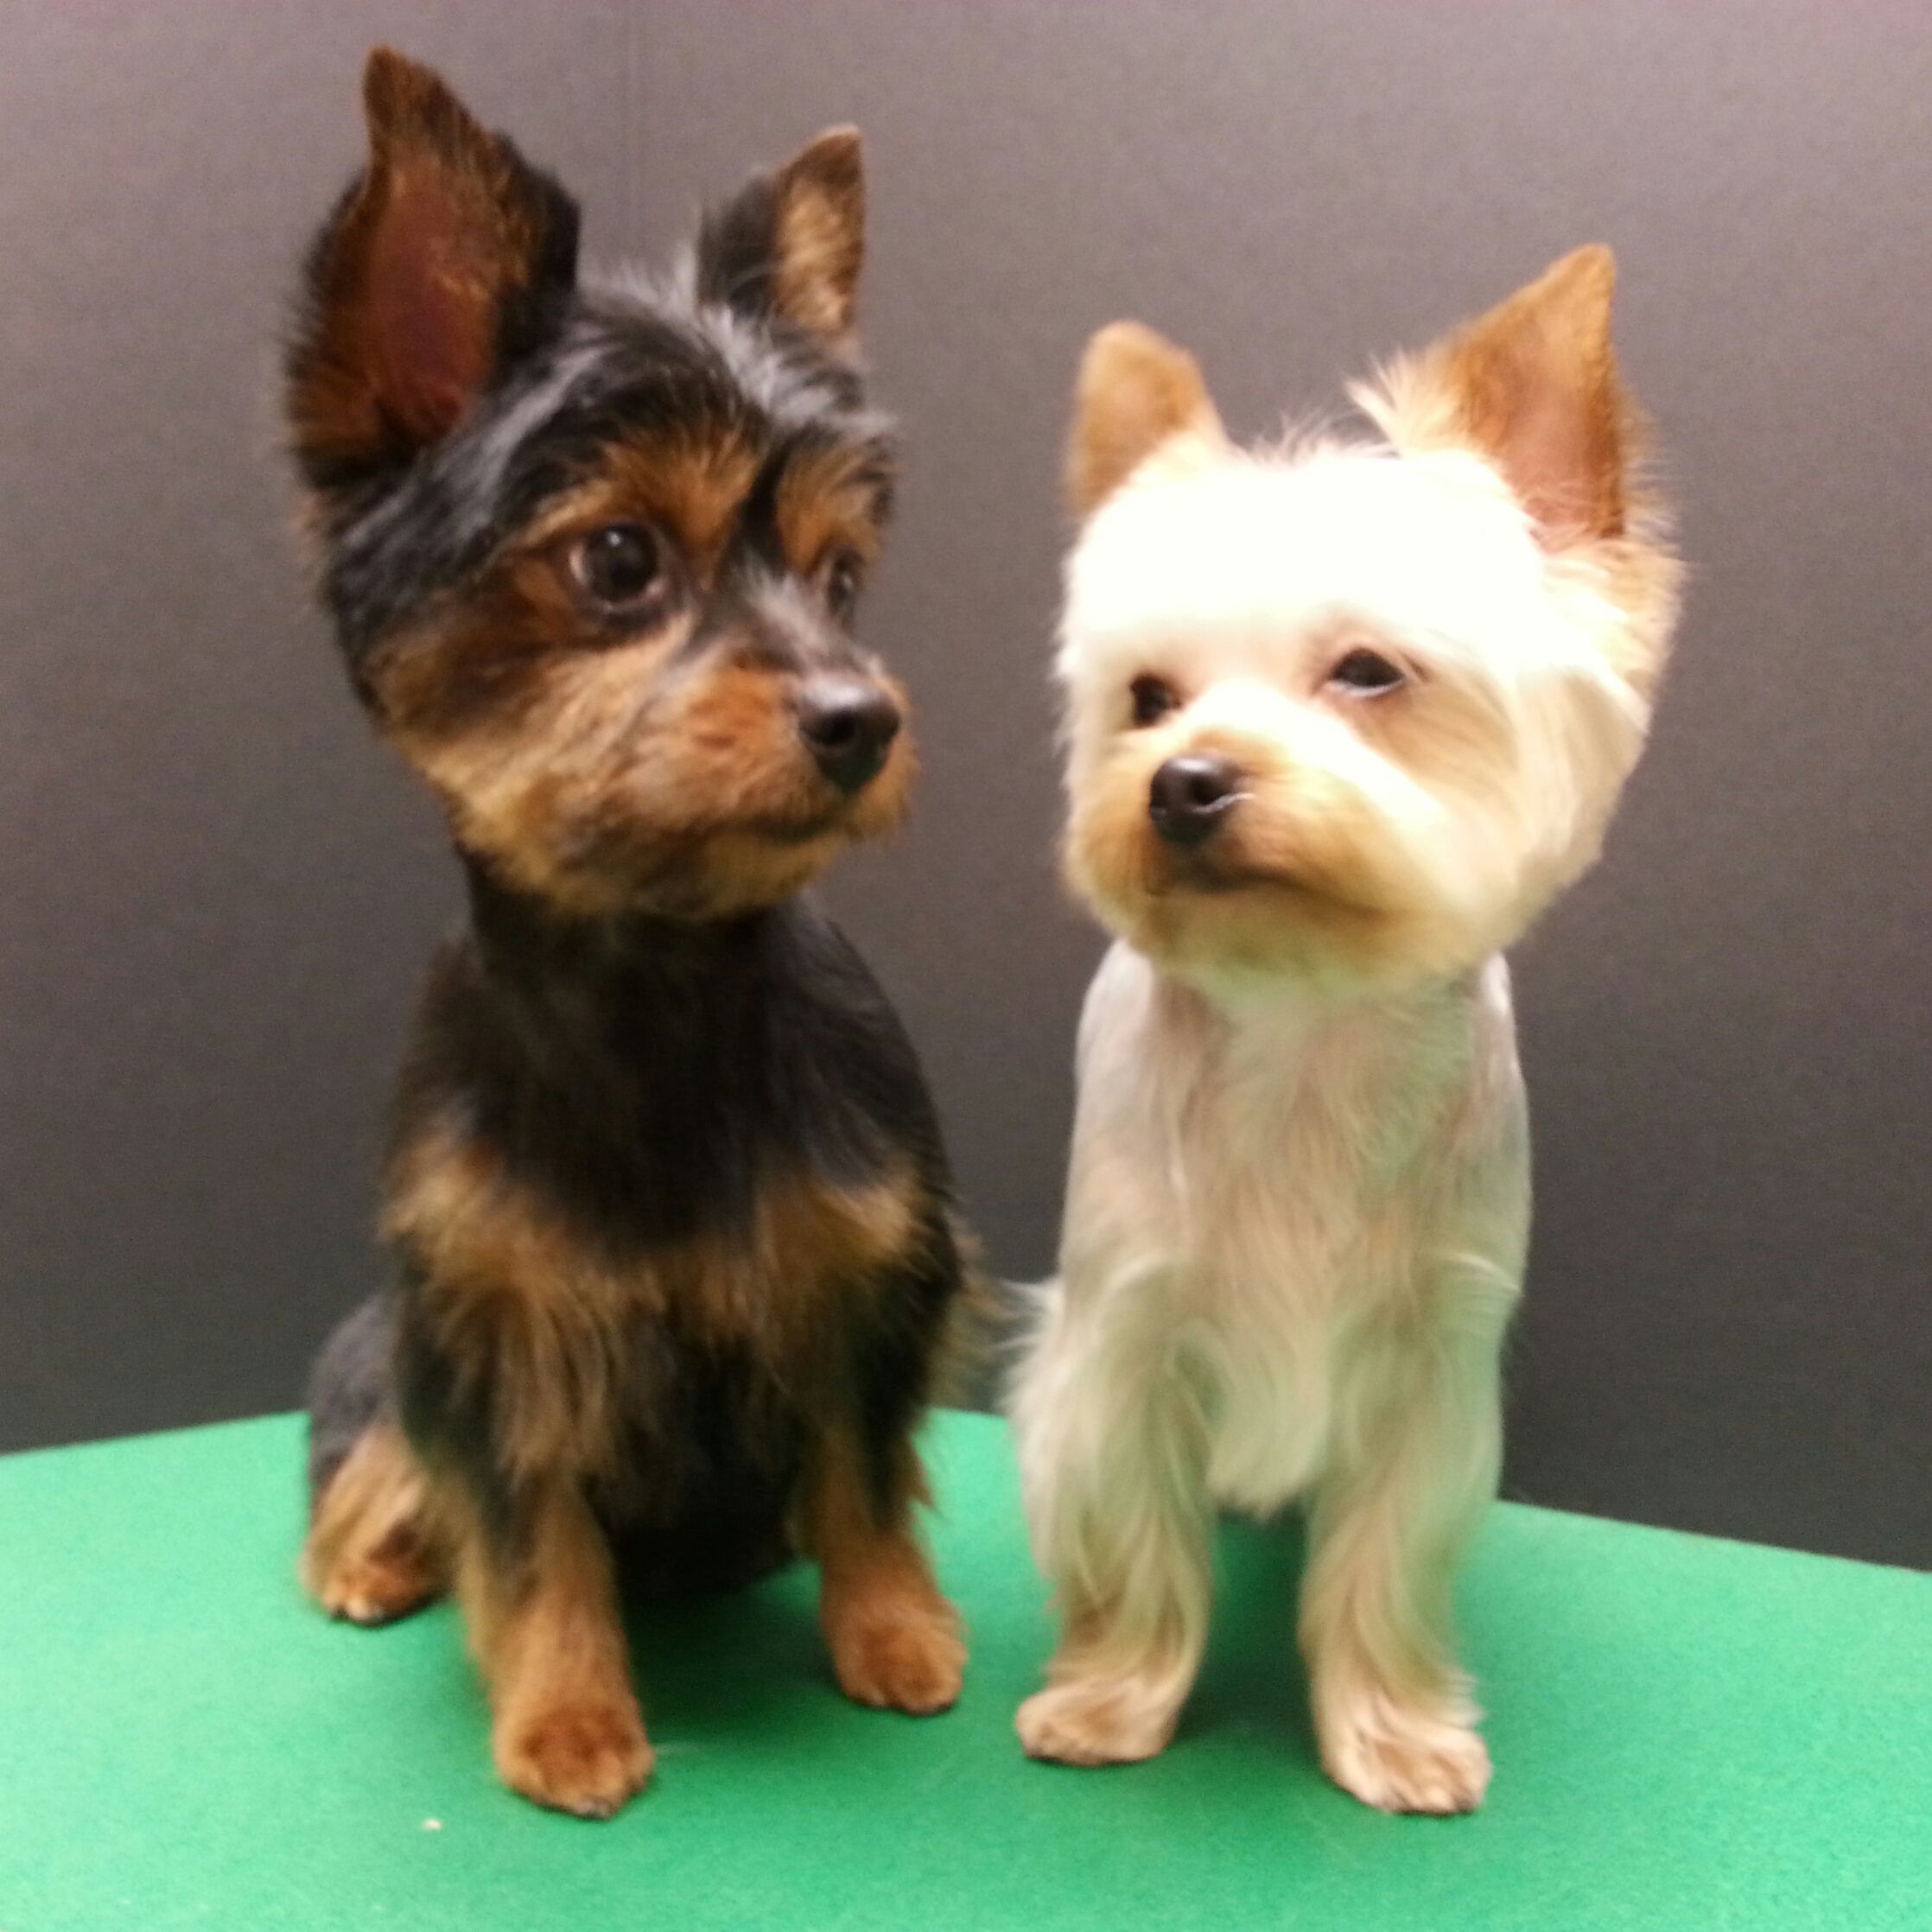 Pin By Stephanie On Doggy Animal Stuff Yorkshire Terrier Dog Yorkie Terrier Yorkshire Terrier Puppies